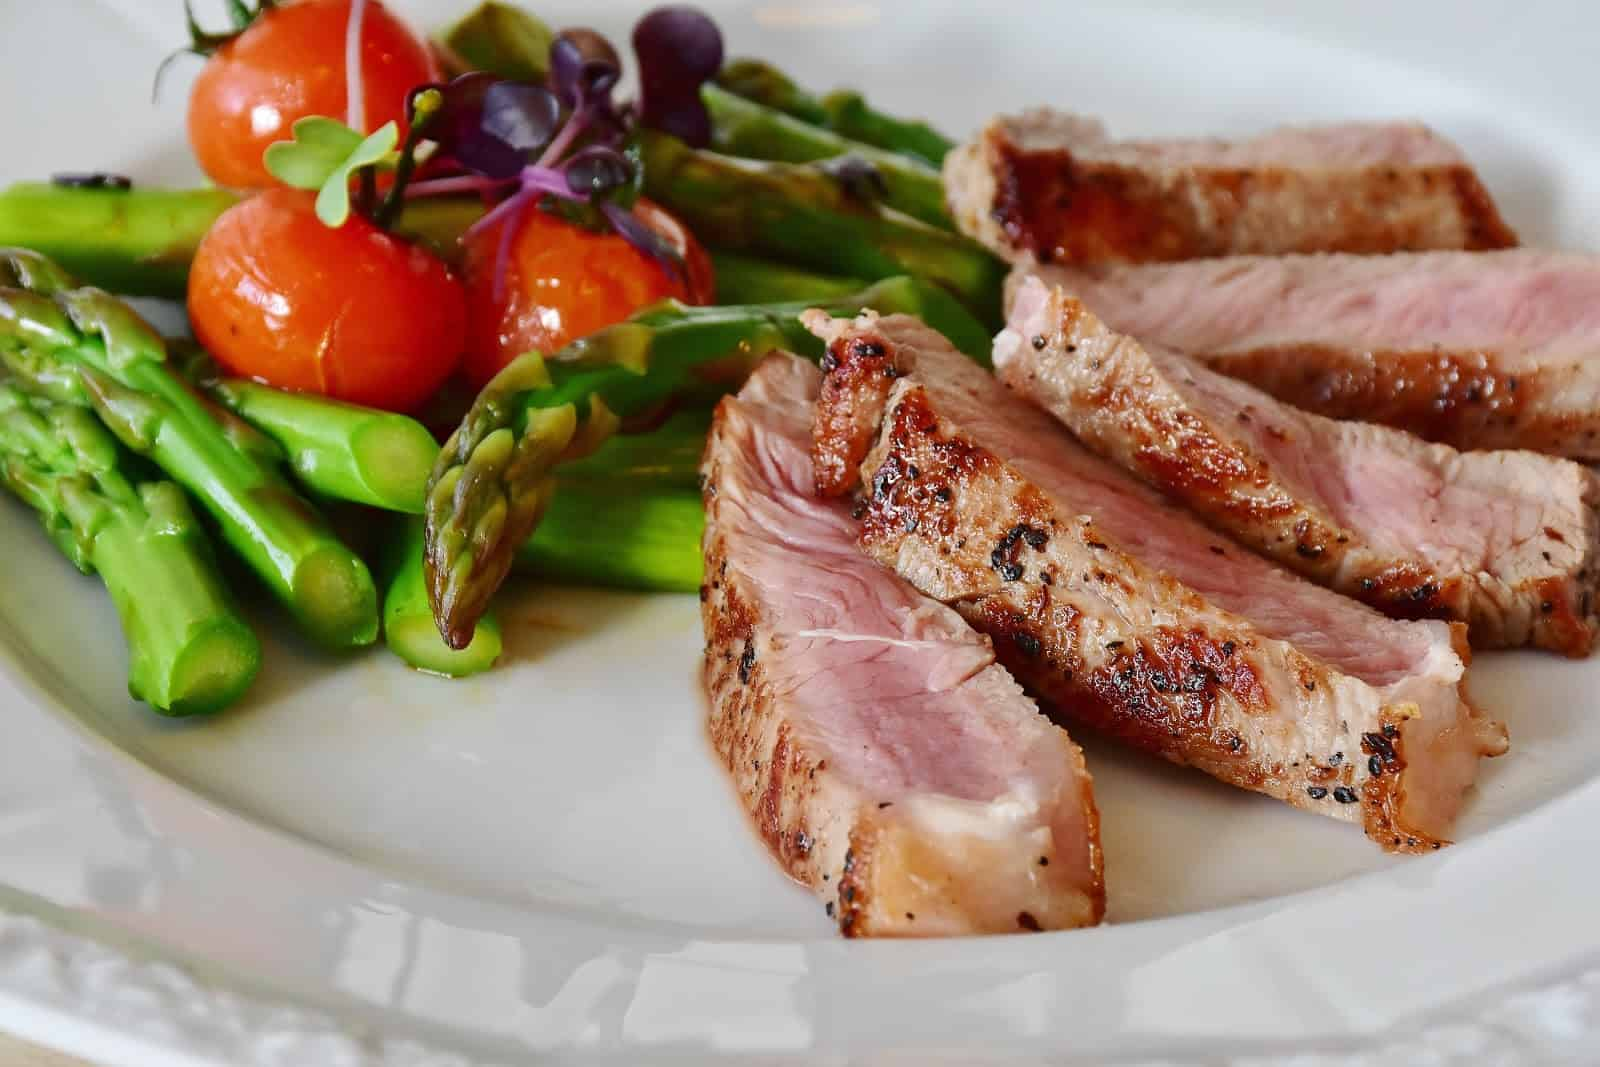 Steak, asparagus and tomatoes on plate.